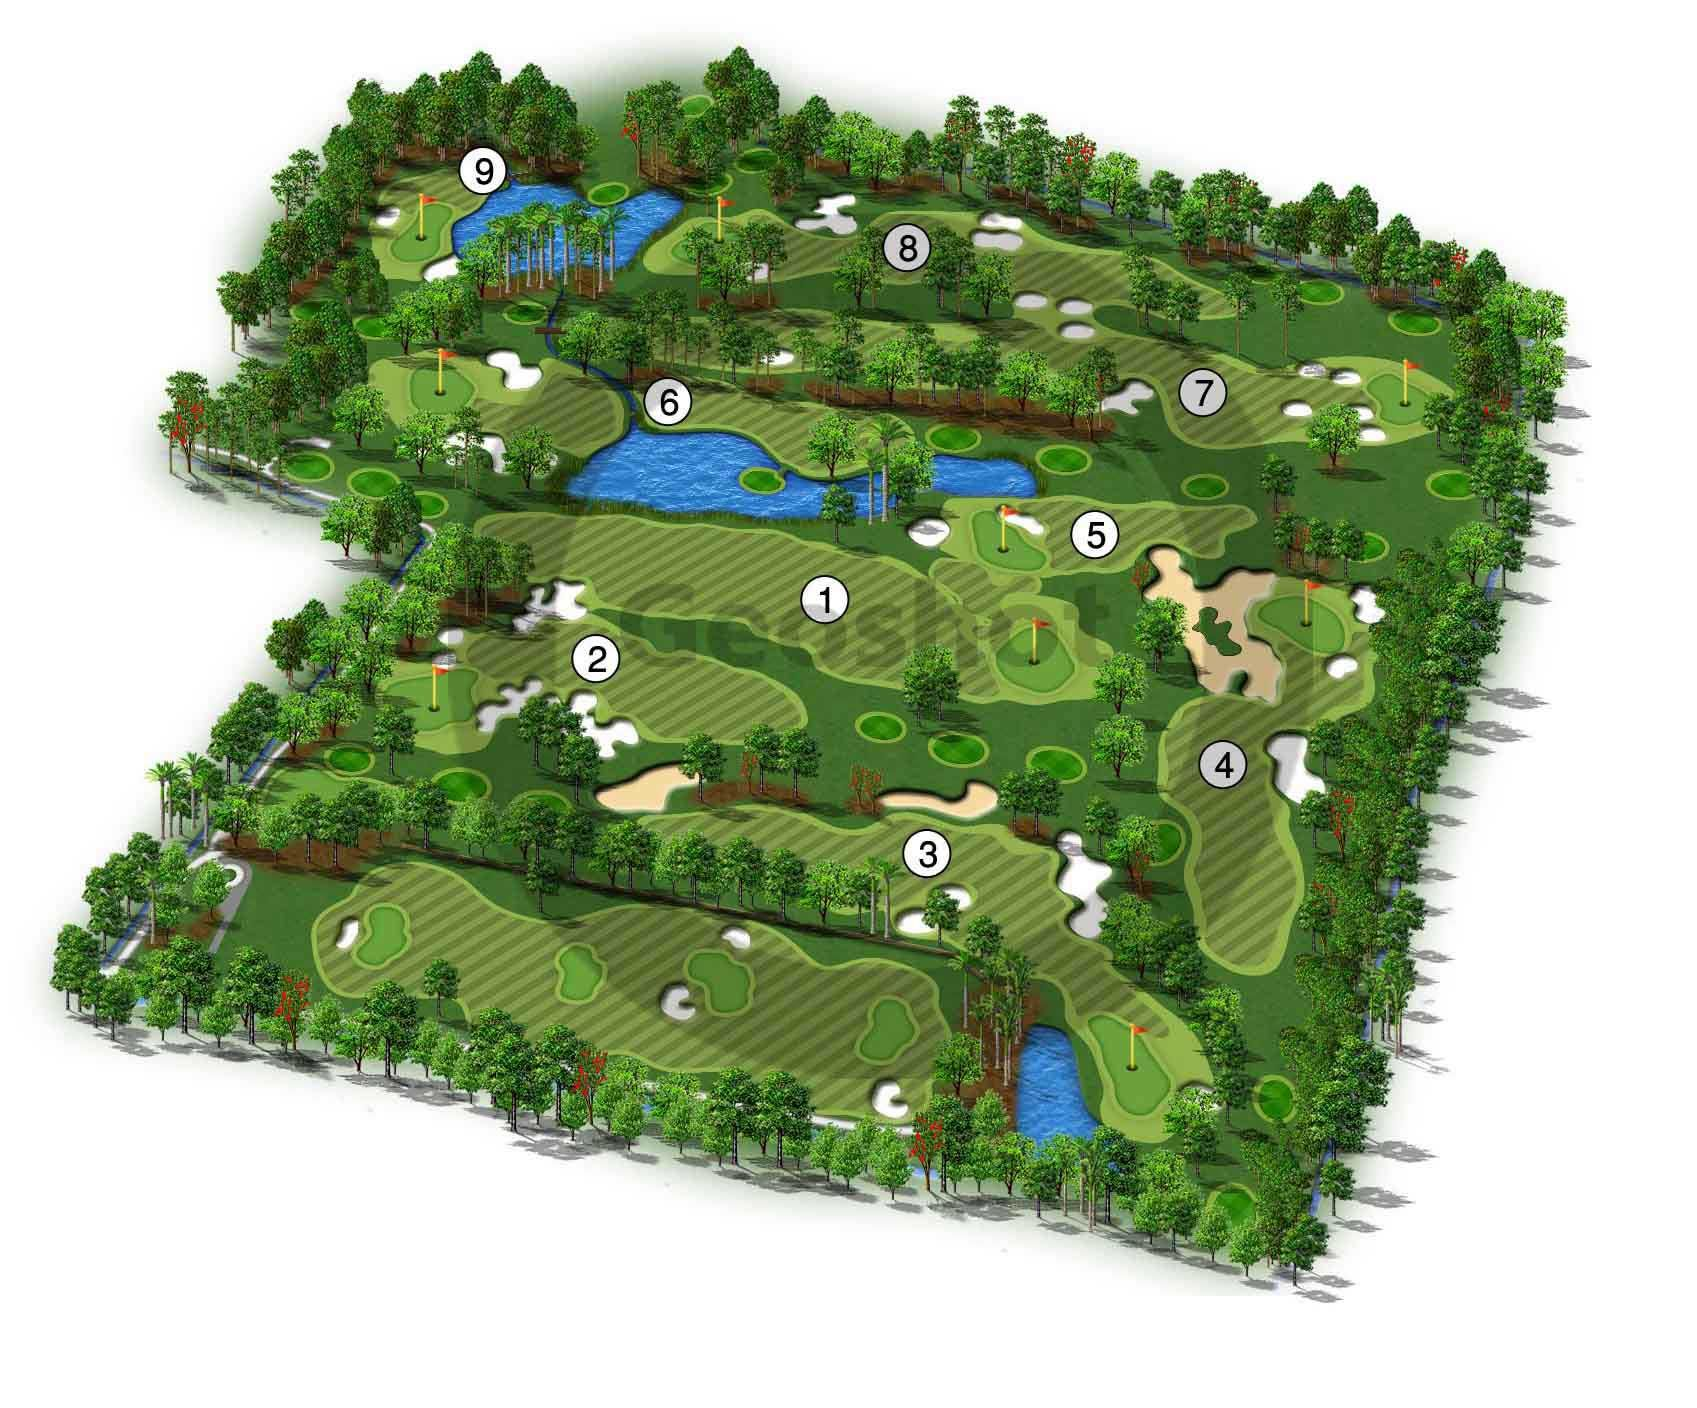 Golf Course Maps Golf Course Mapping Yardage Books Golf Courses Golf Golf Design